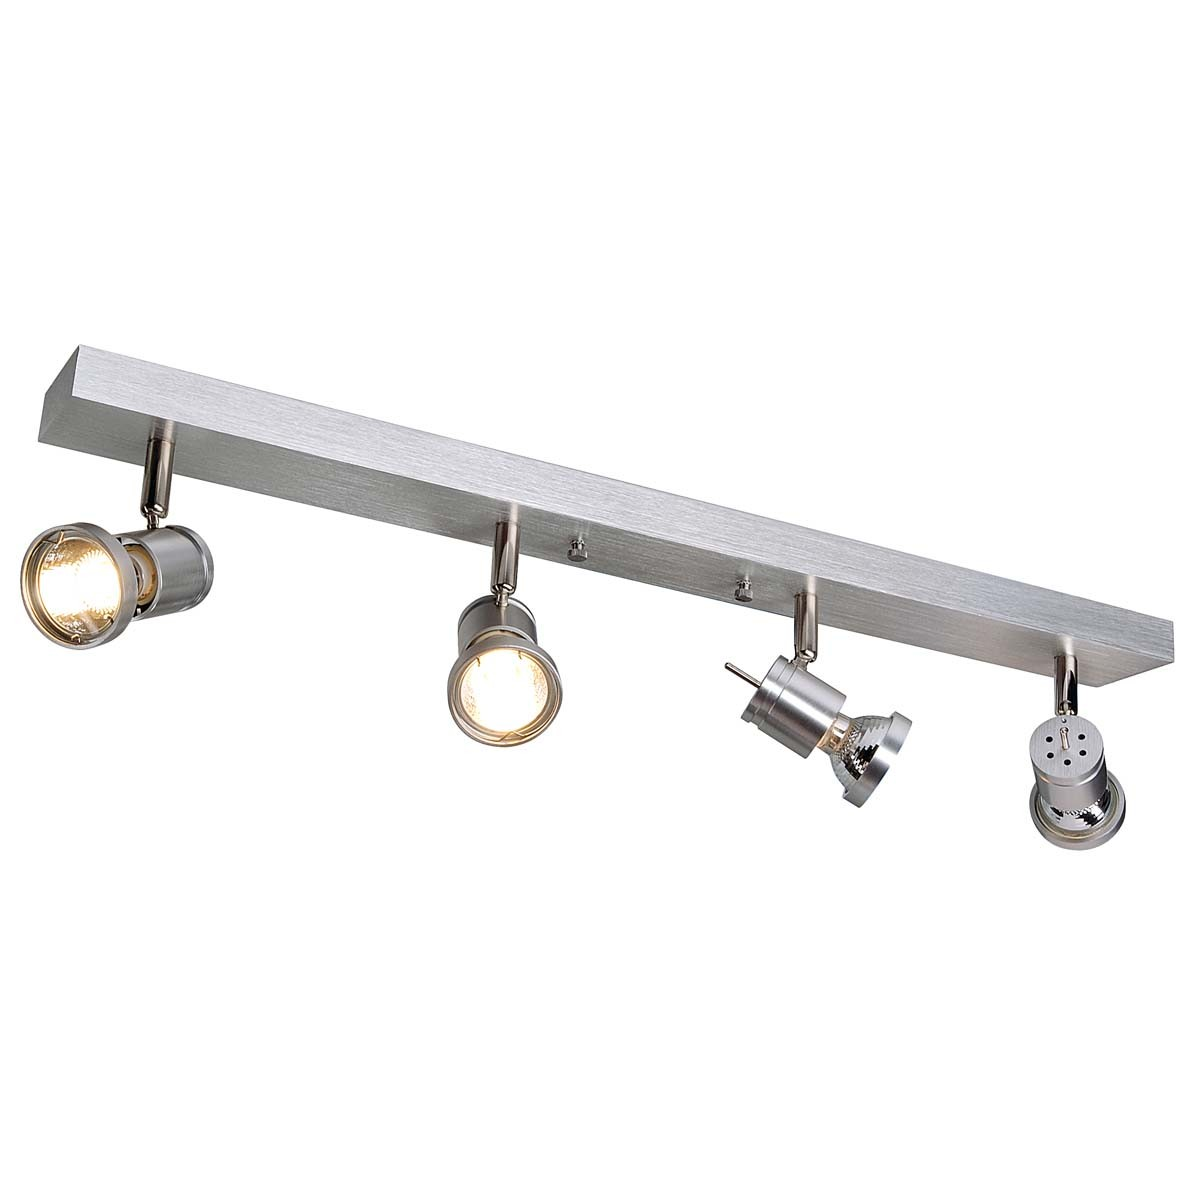 SLV 147444 Asto 4 4x75W Brushed Aluminium Ceiling & Wall Light